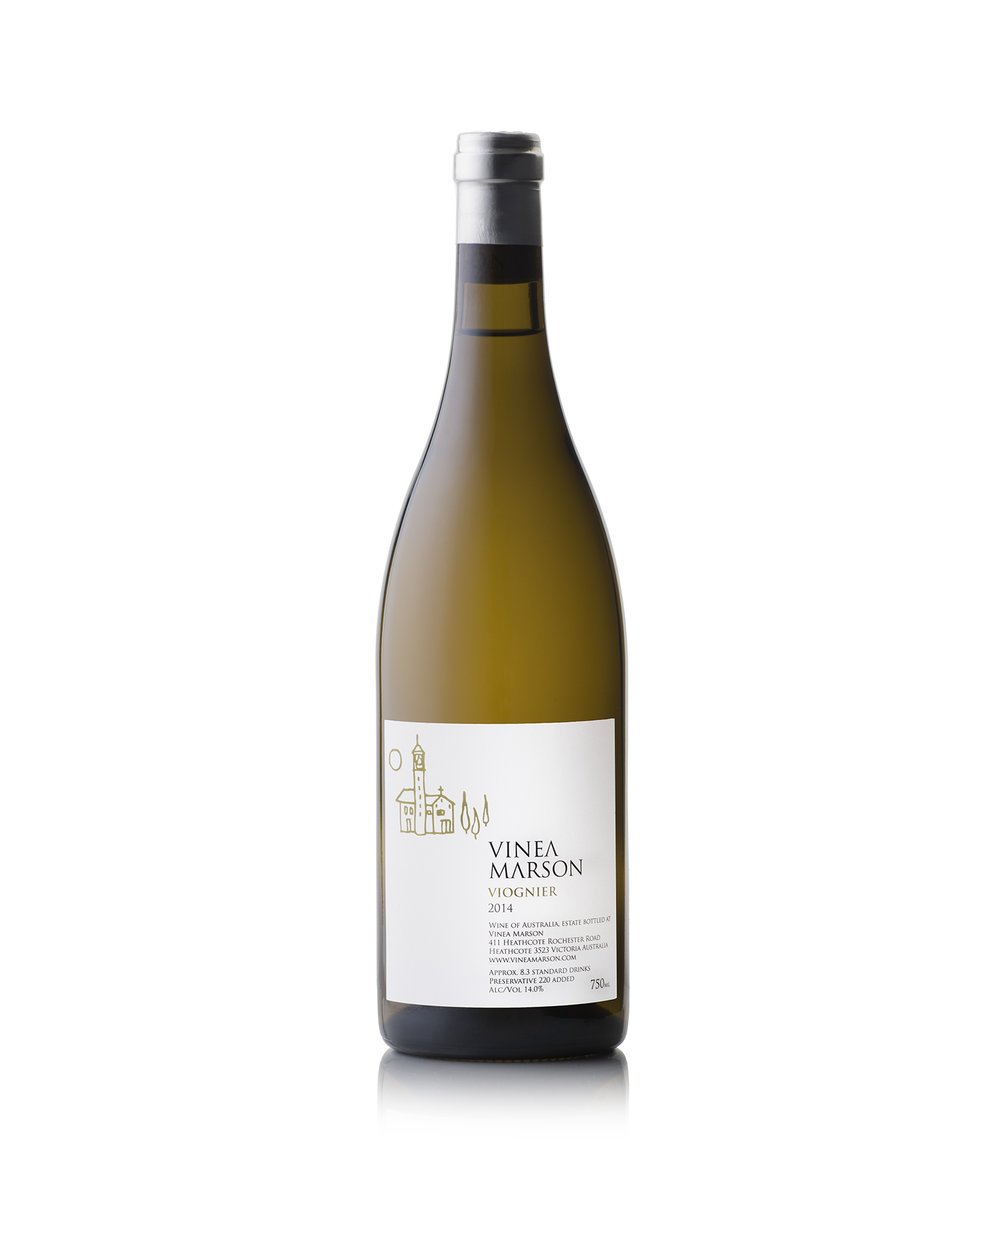 2014 VIOGNIER  - 14.0% alc/volThe 2014 estate-grown Viognier is pale green in colour with slight straw tinges. It displays an elegant, citrus nose of orange pith with hints of apricot, ginger spice, cloves and delicate toast from French oak (30% new). The balance between acidity and sweetness is further evident on the palate – whose supple richness displays myriad citrus and apricot notes. Picked at optimum ripeness, the aspect of the Viognier parcel in the Sopra Vineyard at Vinea Marson allows us to create a wine that demonstrates a beautiful balance between crisp flavours and subtle sweetness.